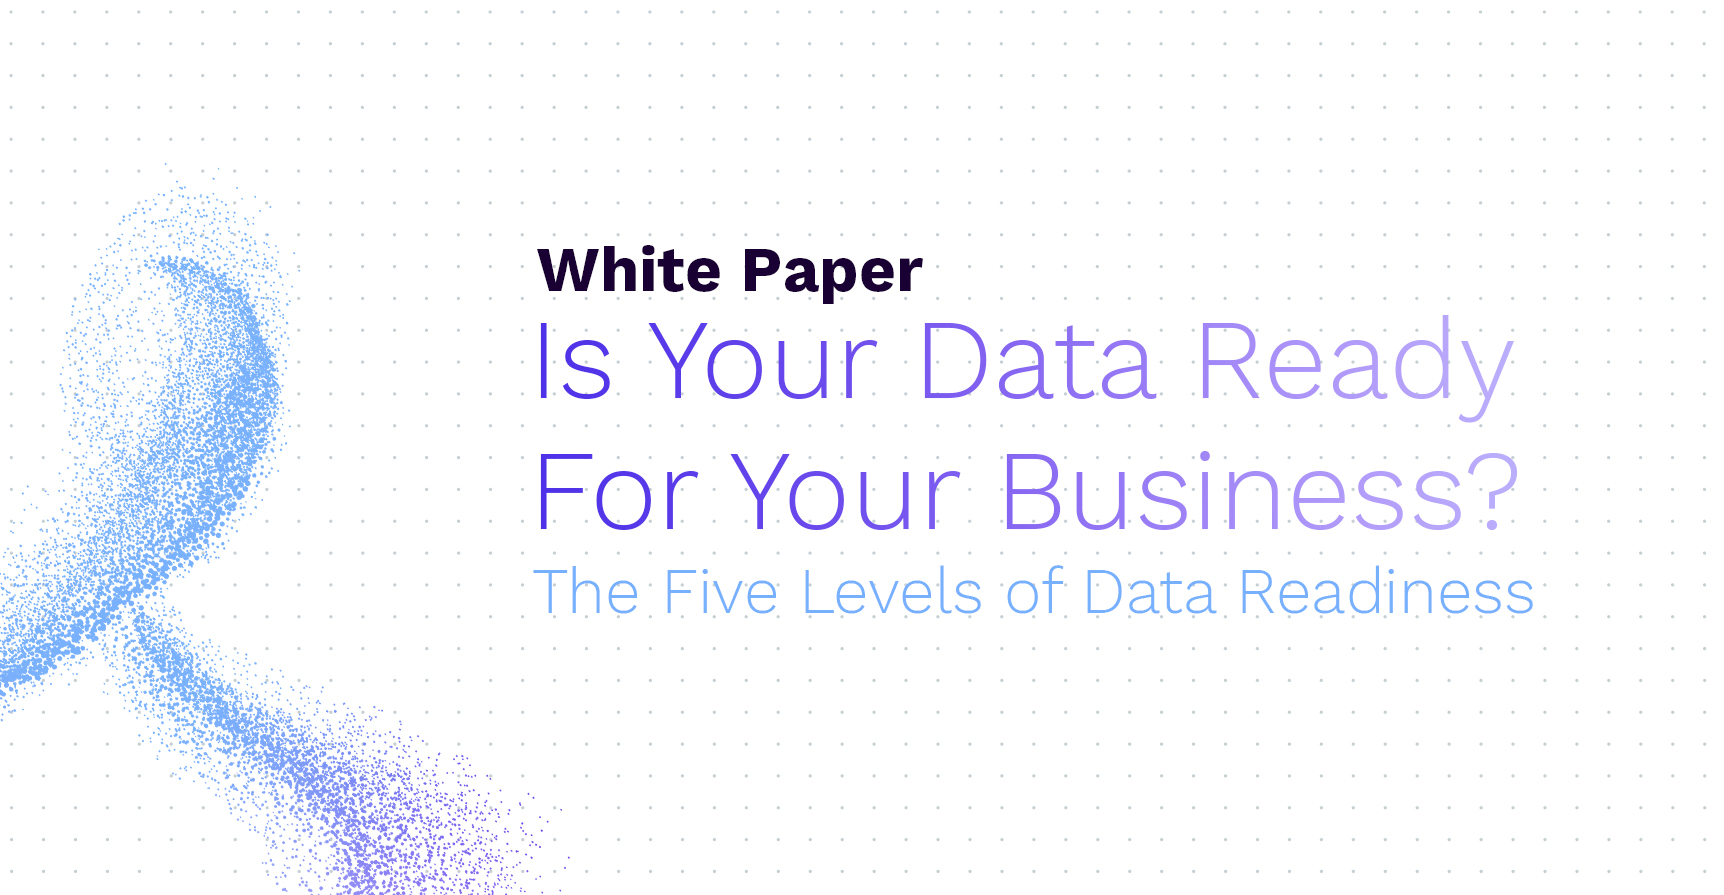 Is Your Data Ready For Your Business?